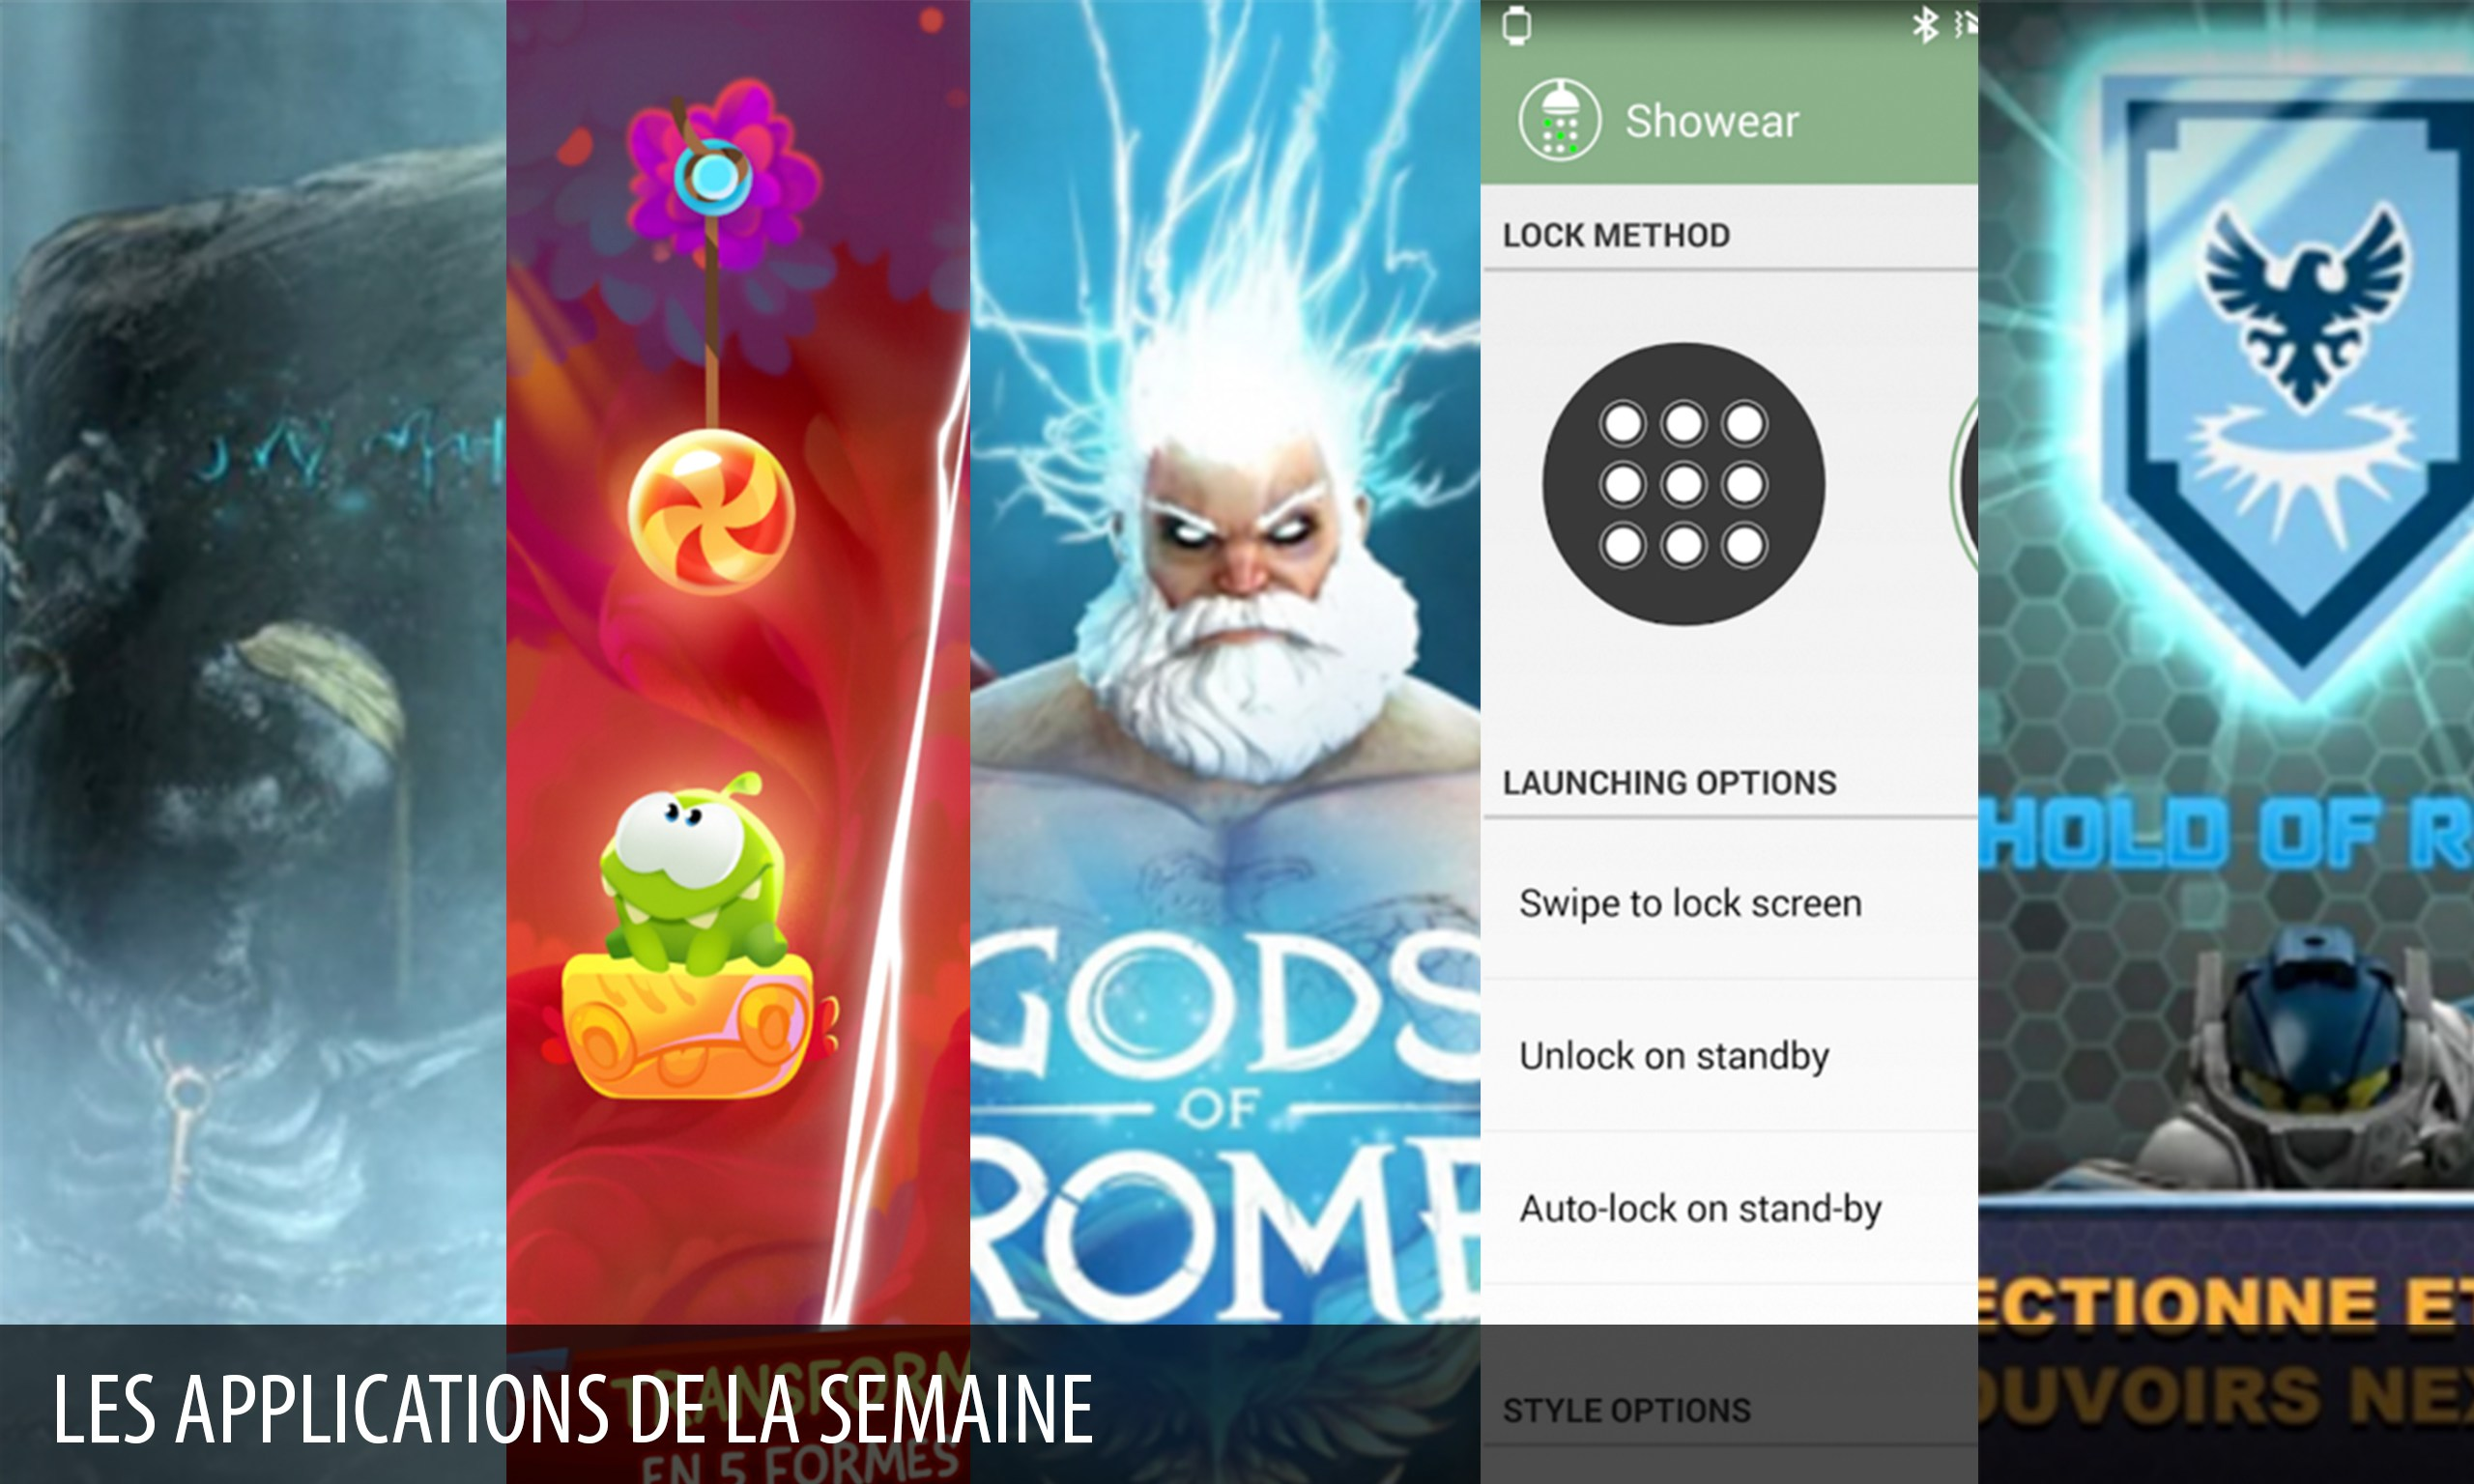 Les apps de la semaine : Gods of Rome, Shadowgate, Showear…